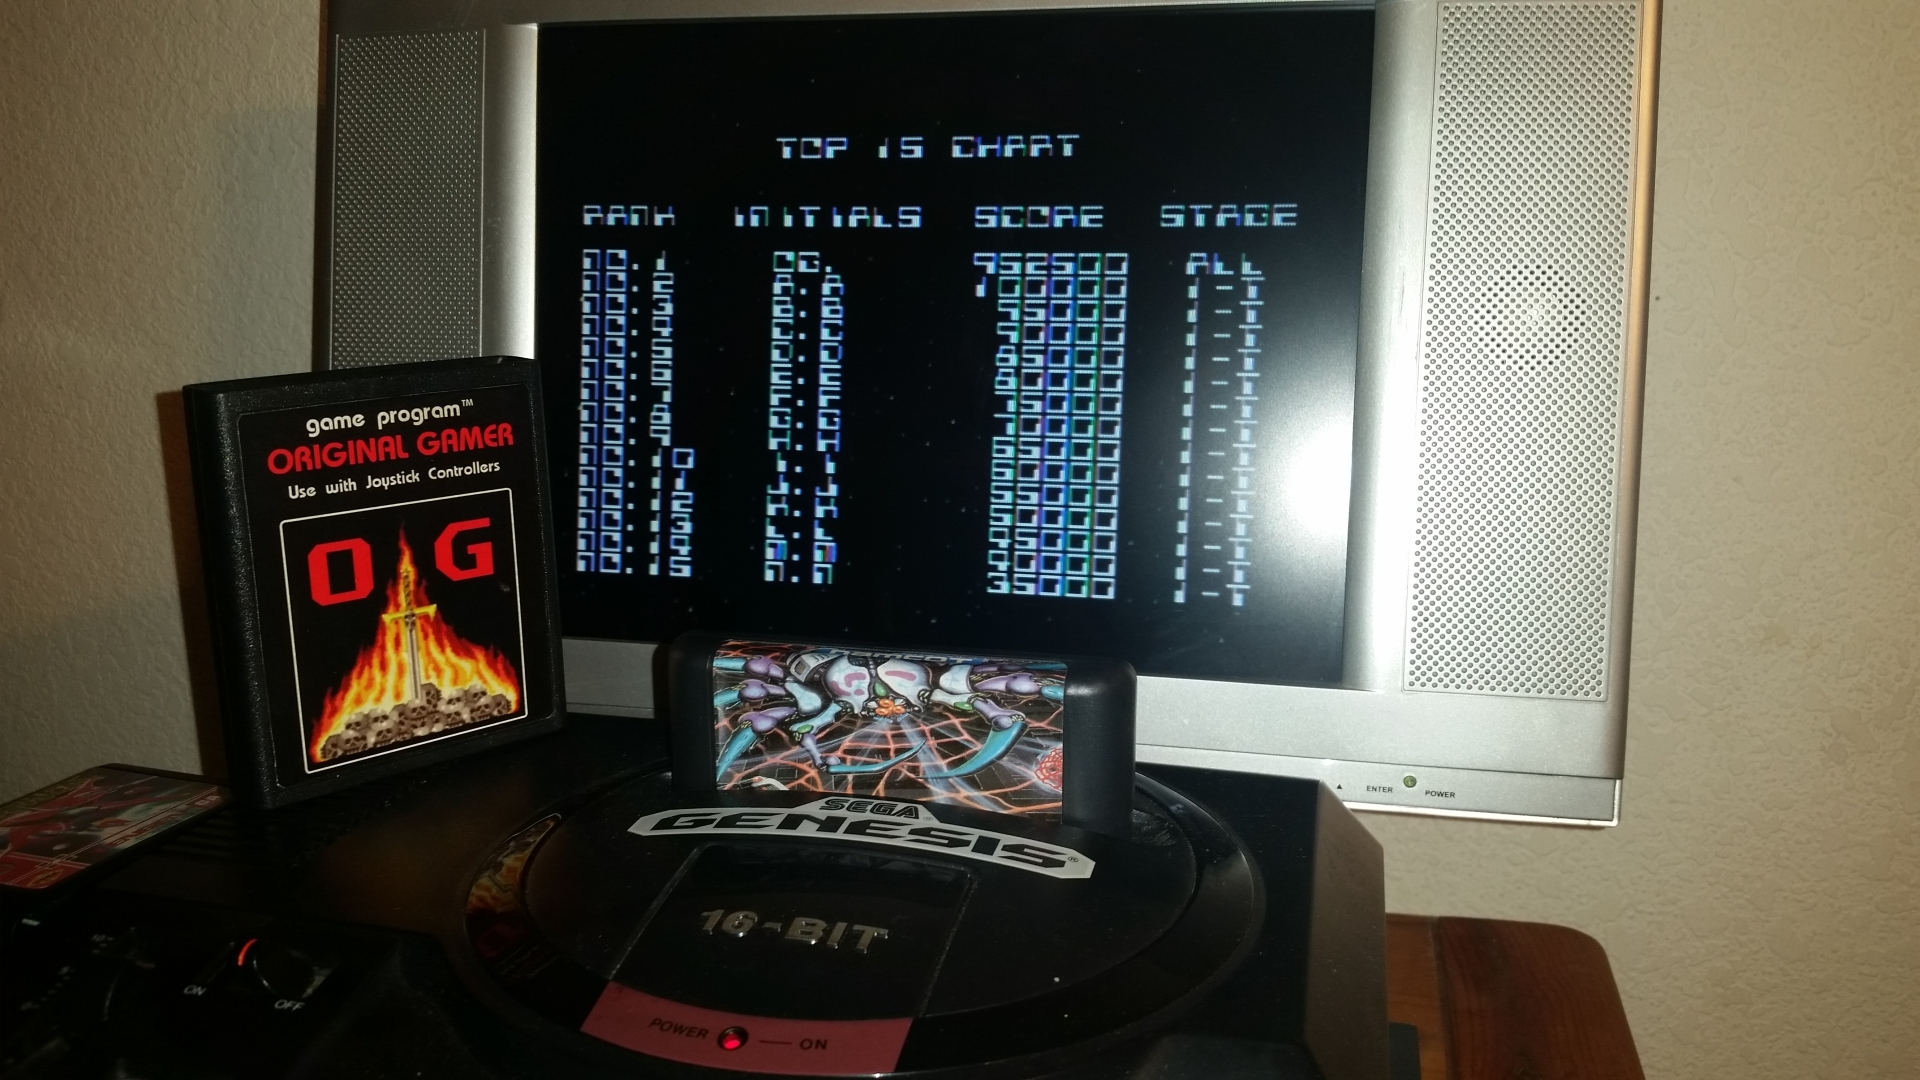 OriginalGamer: Dangerous Seed [Normal] (Sega Genesis / MegaDrive) 952,500 points on 2016-11-17 01:07:16